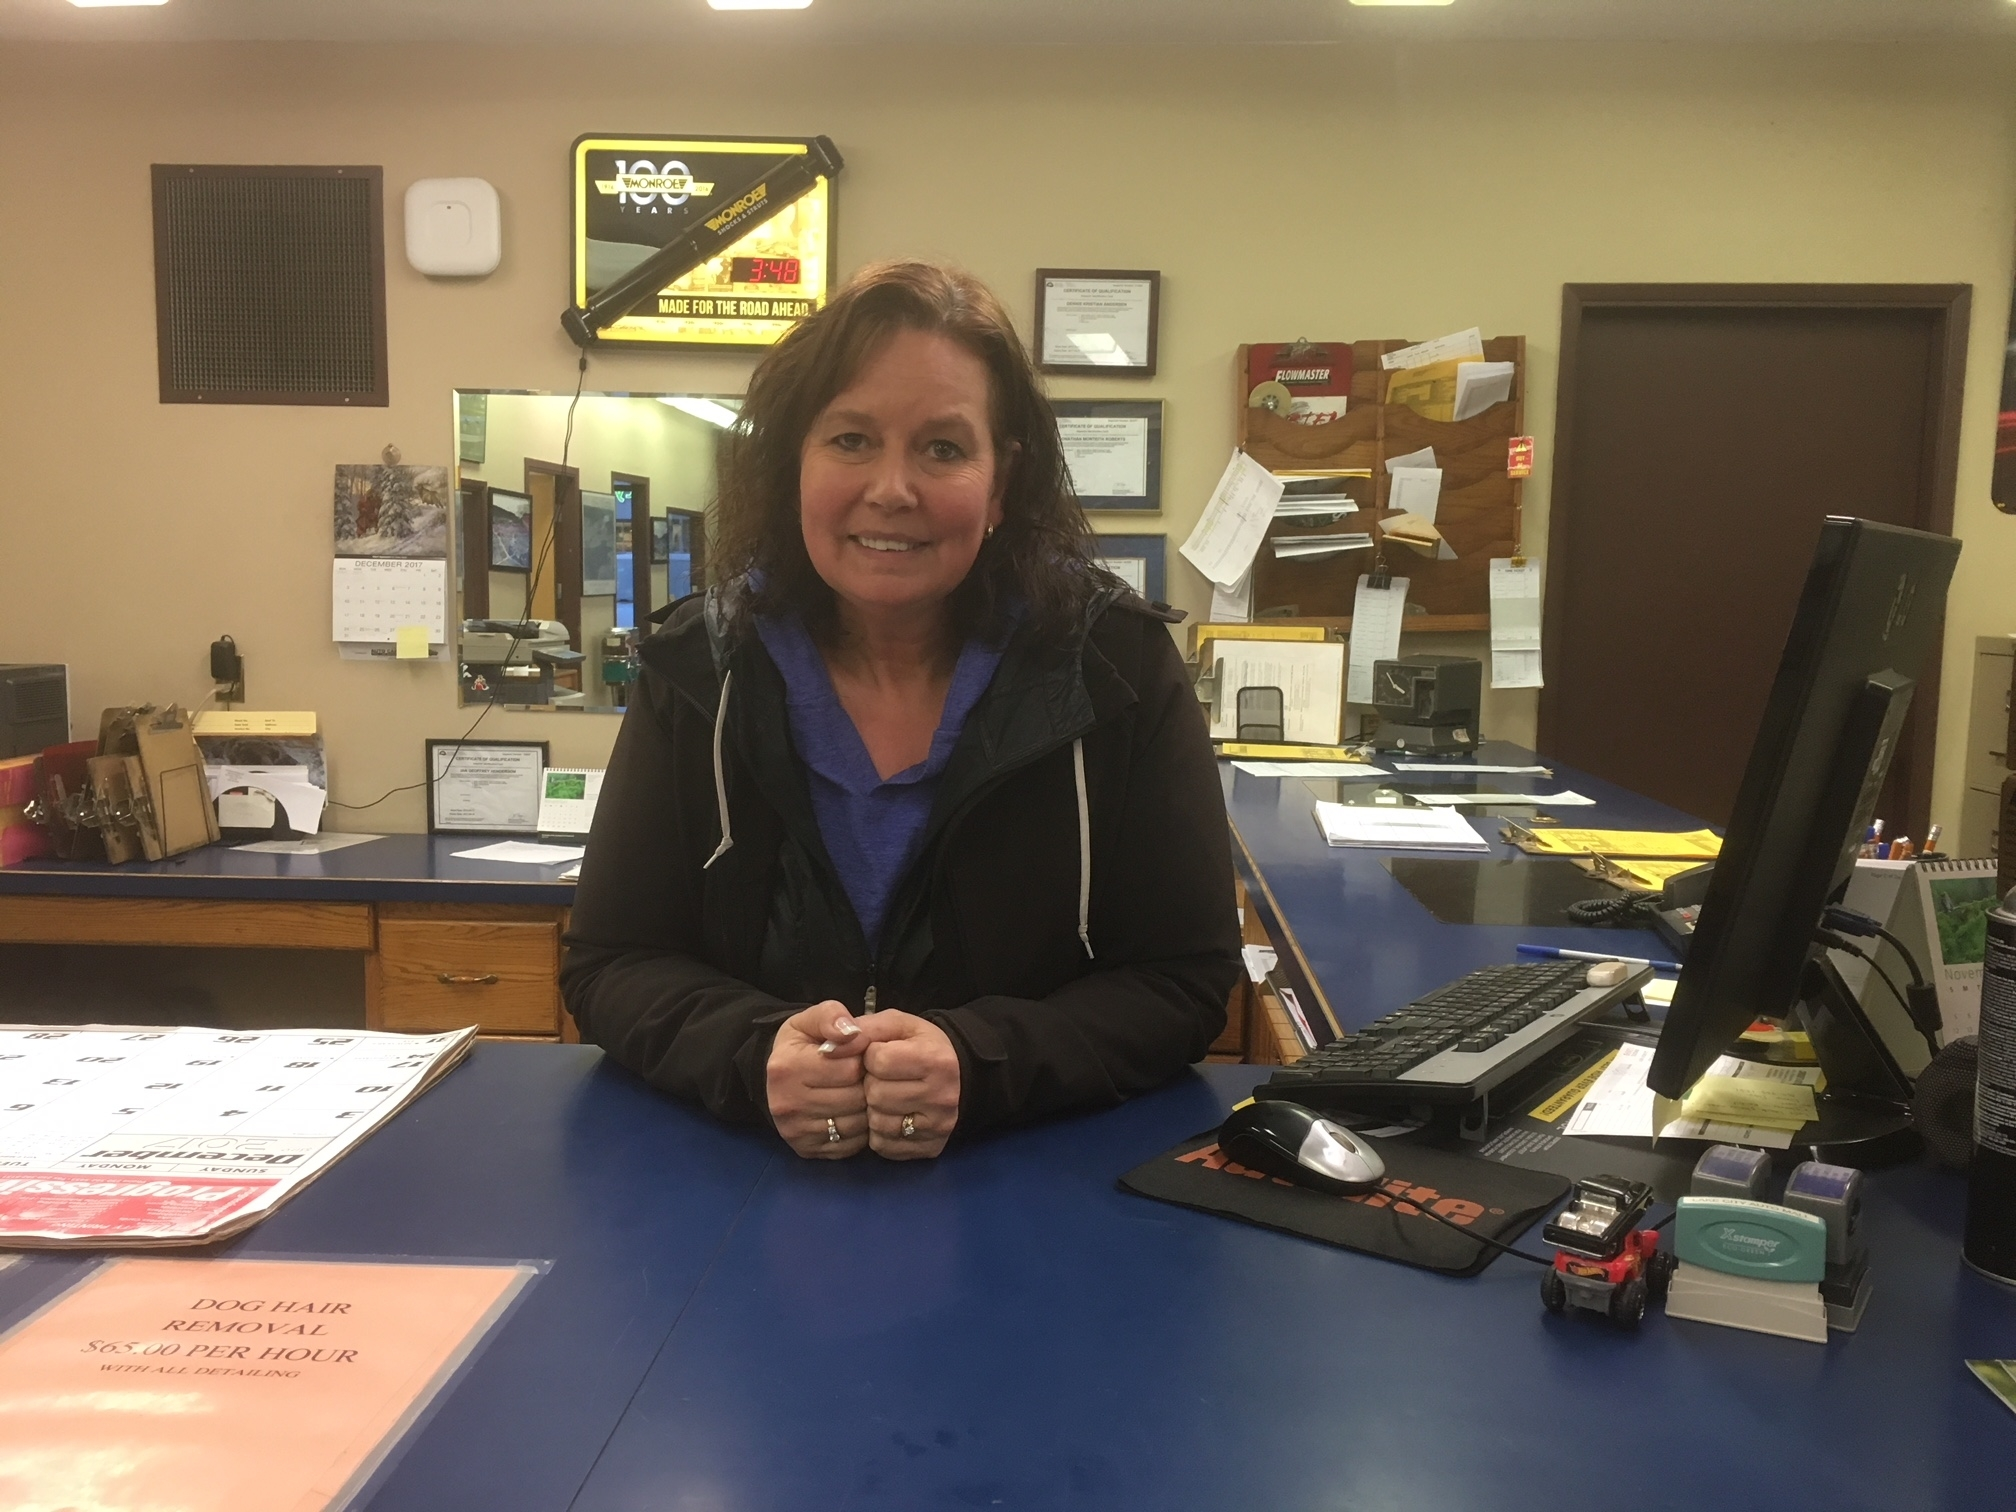 Lake City Auto Care Mall in Williams Lake: Lake City Auto Repair, Tina at Front Counter